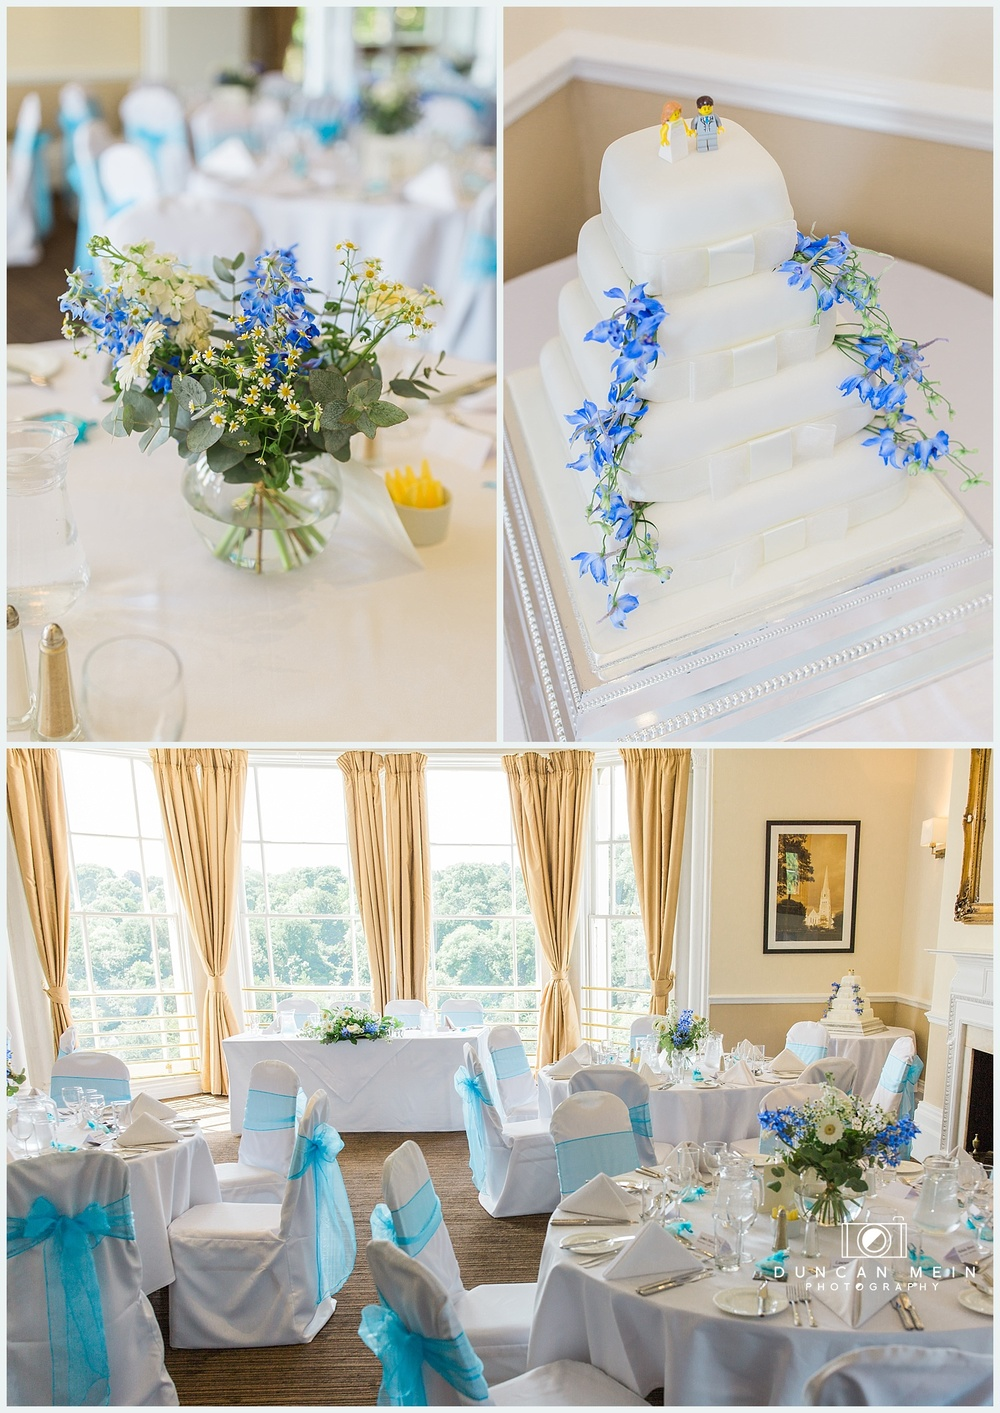 Weddings at Avon Gorge Hotel - Wedding Cake and Table Centre Pieces